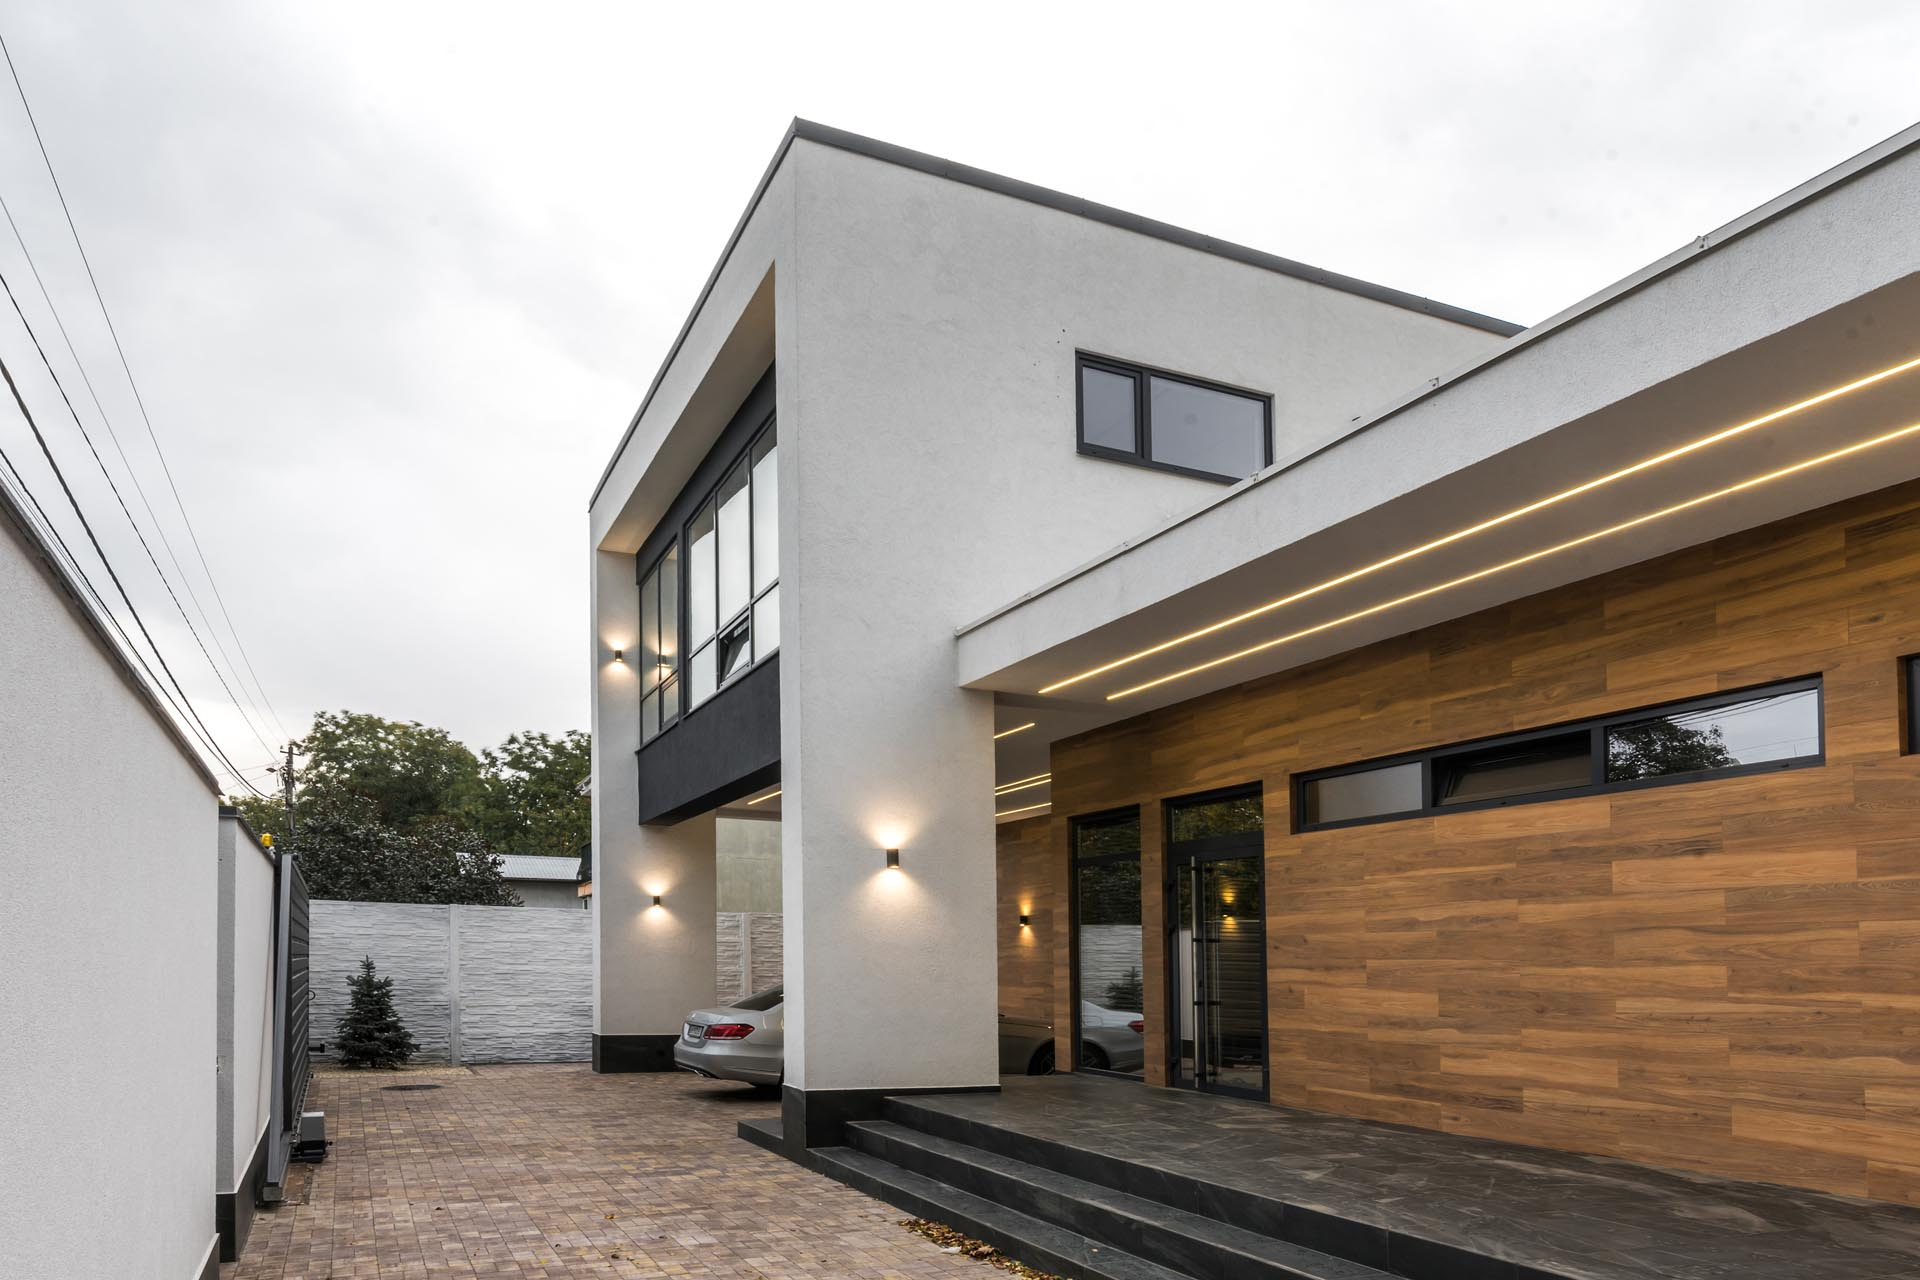 A modern home with wood-like tiles and matte black accentson the exterior.